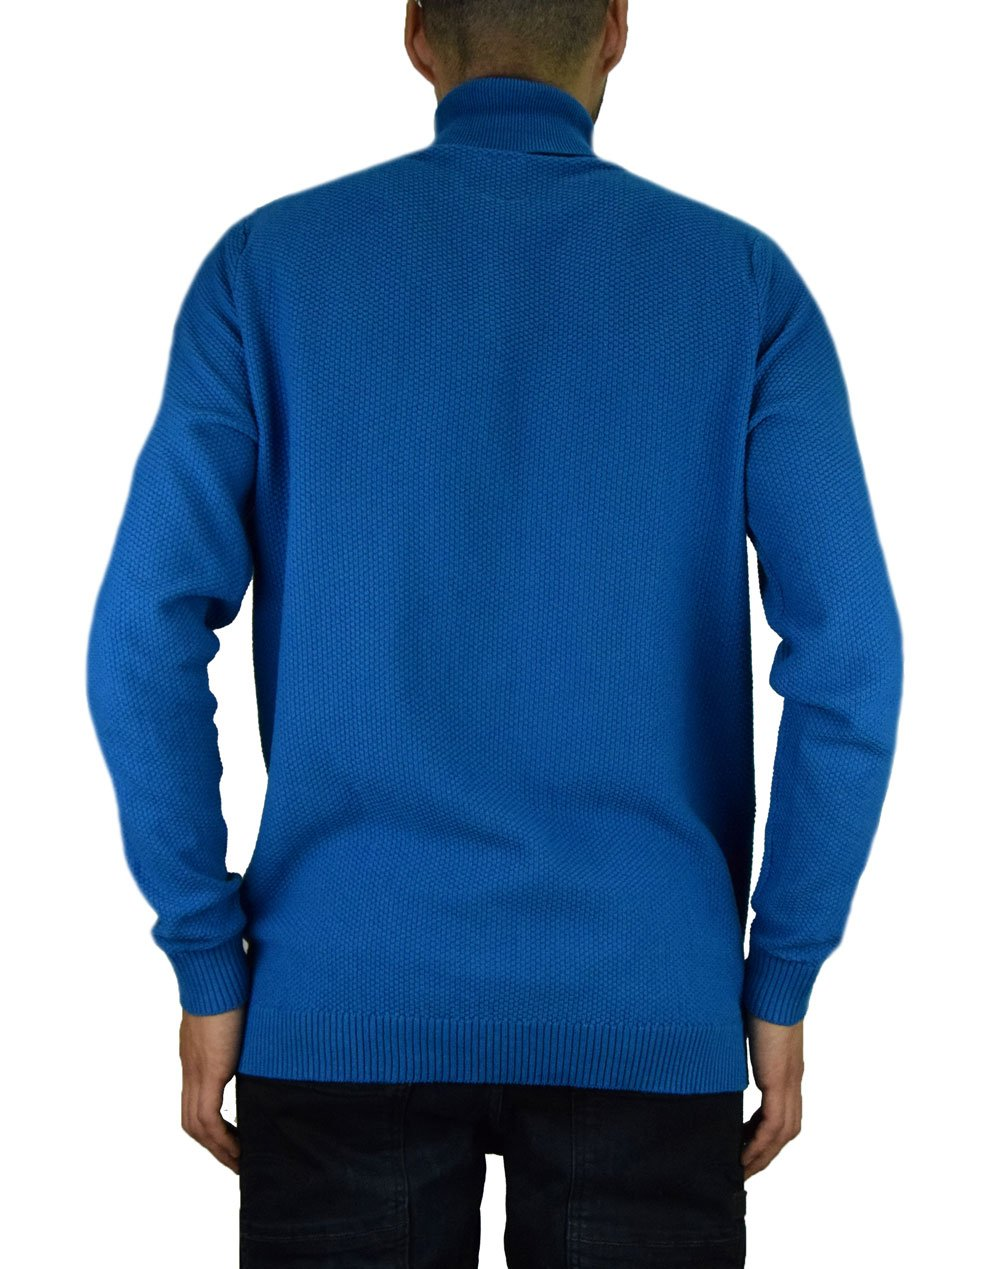 Biston Mens Sweater (42-206-007) Royal Blue